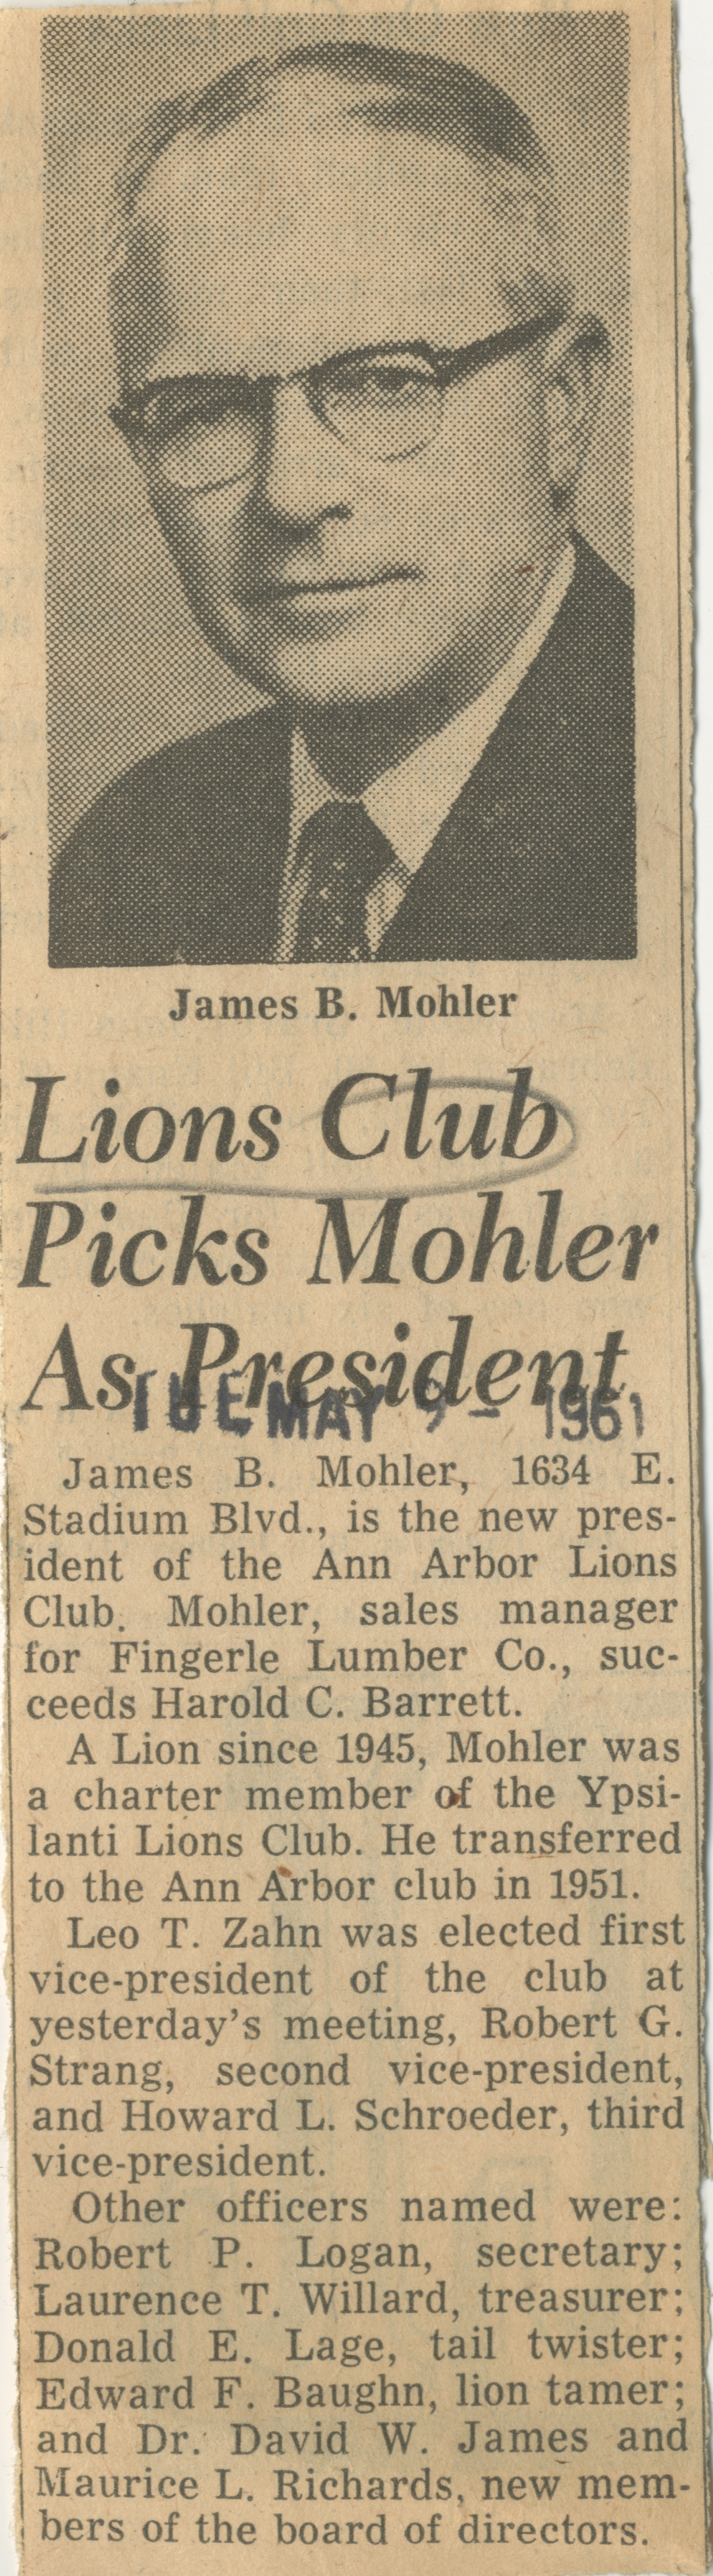 Lions Club Picks Mohler As President image